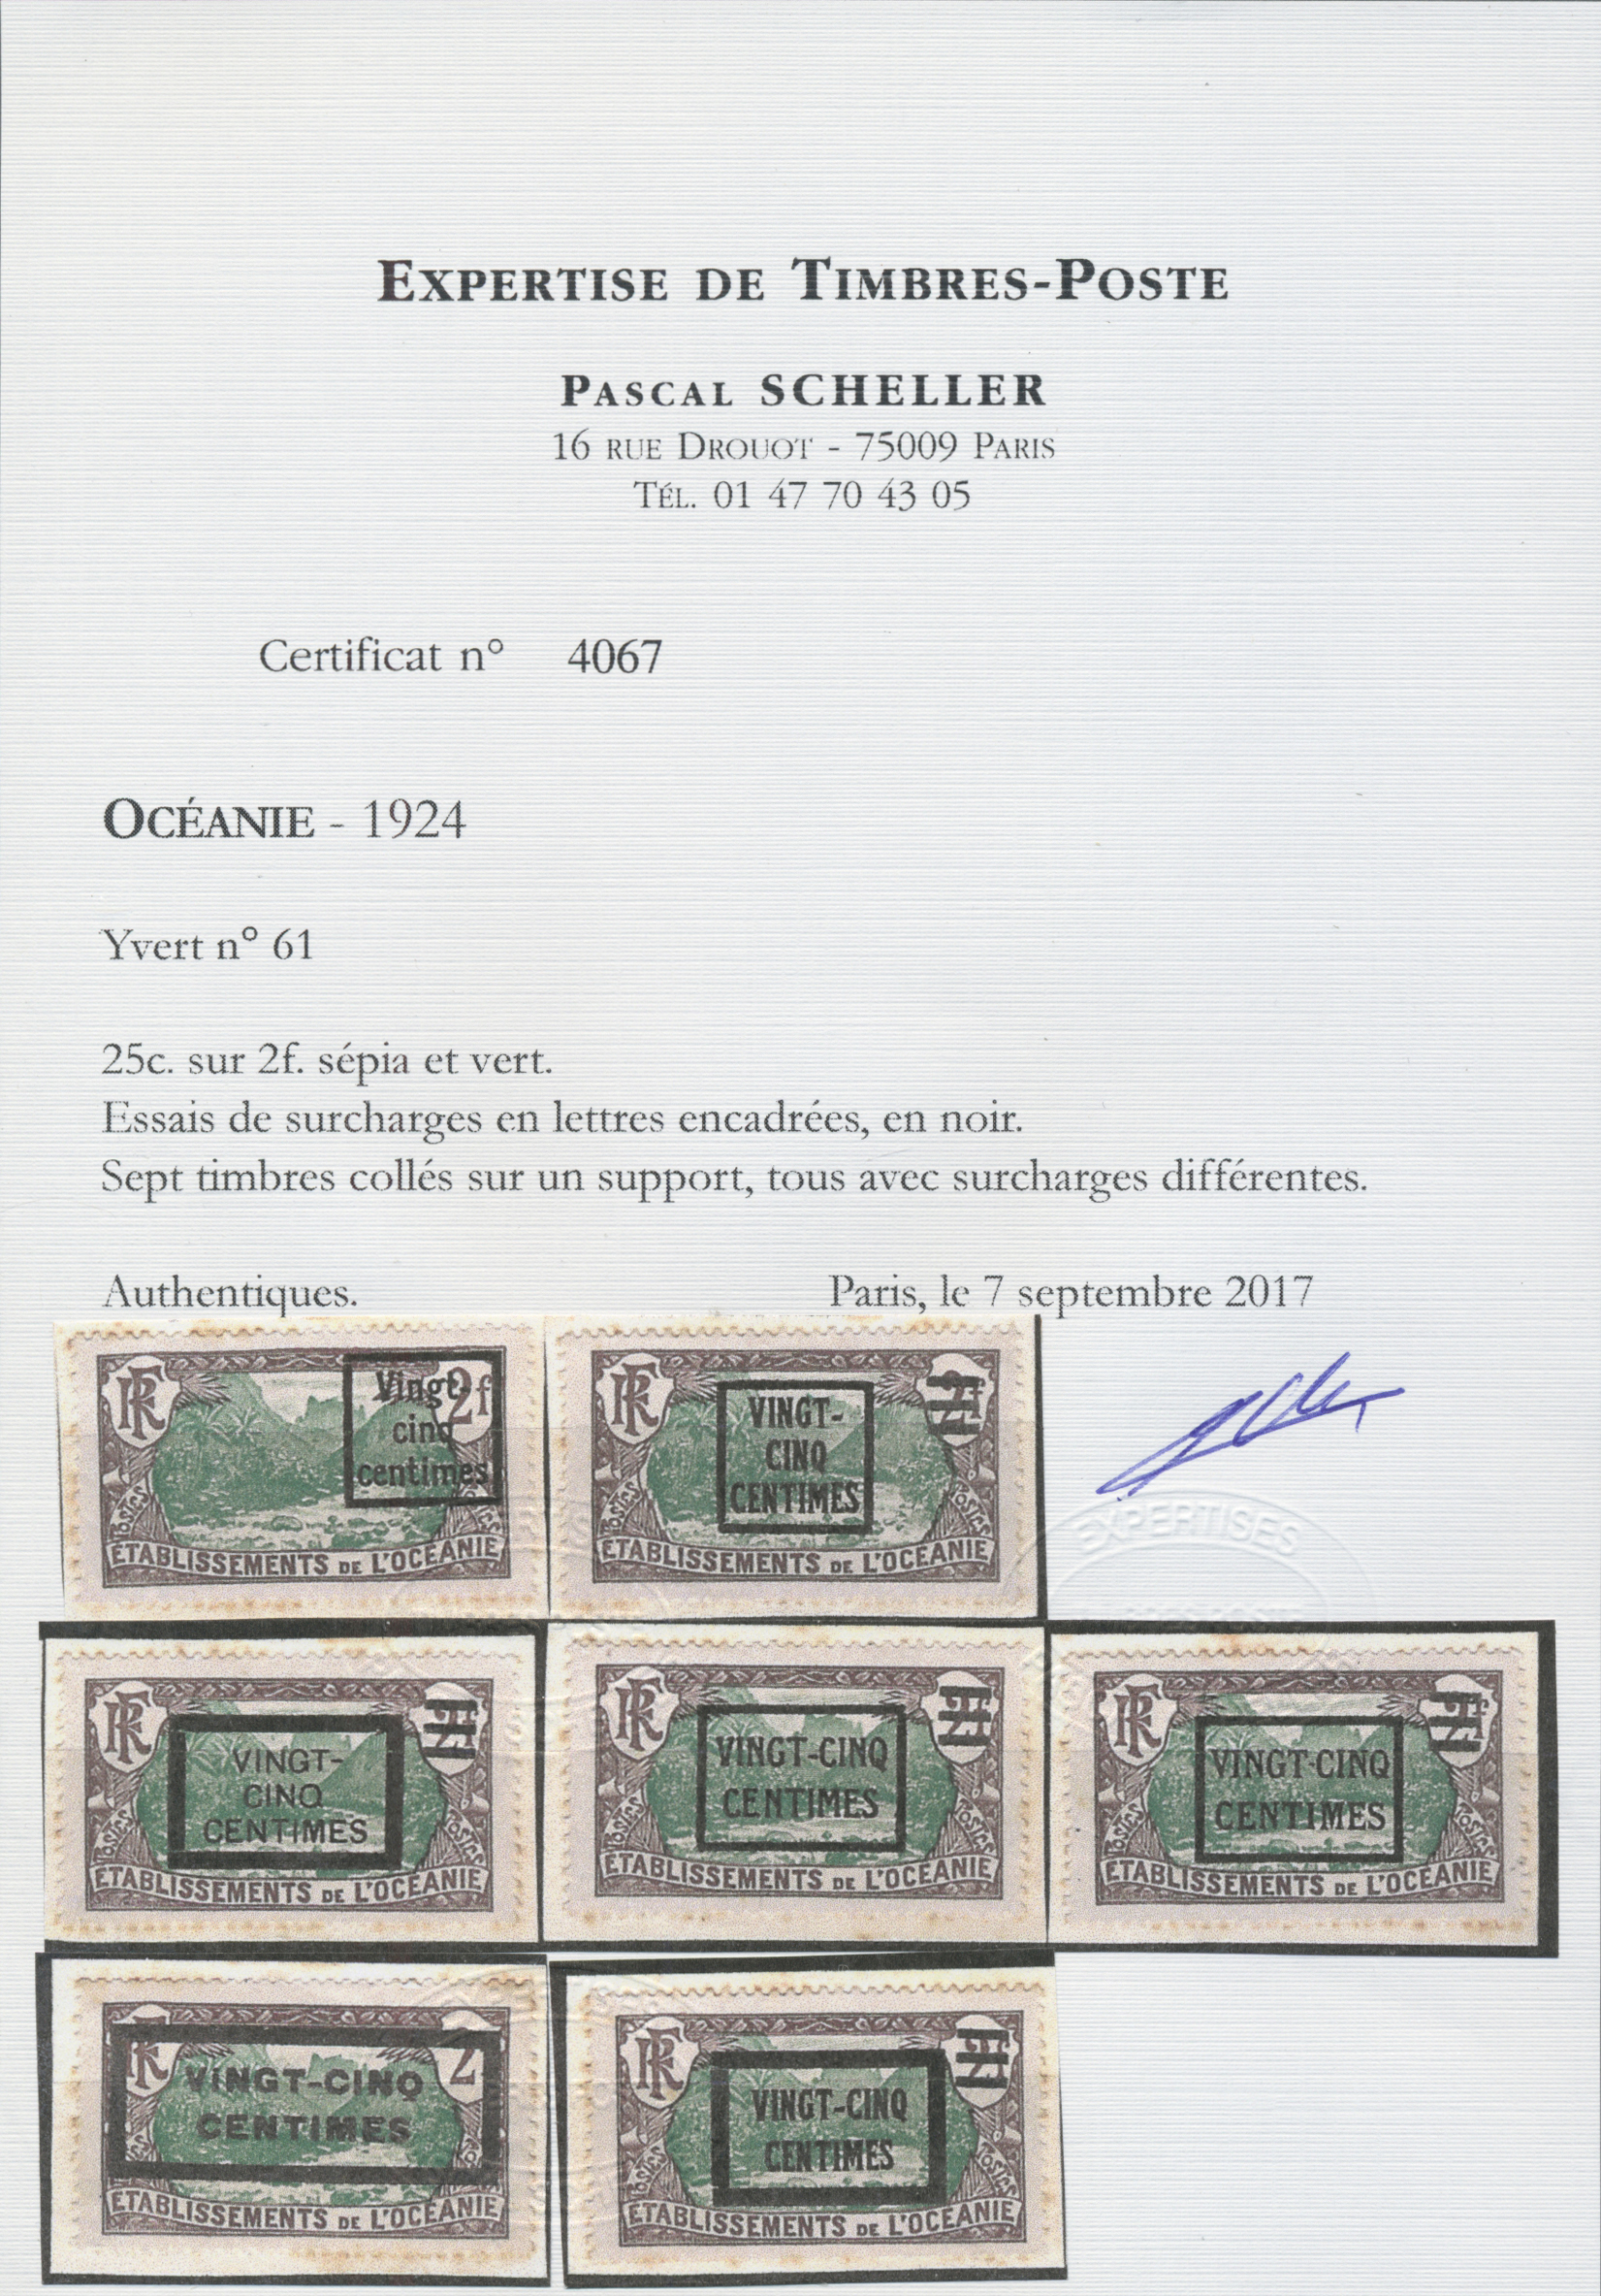 Lot 13743 - französisch-ozeanien  -  Auktionshaus Christoph Gärtner GmbH & Co. KG Single lots Philately Overseas & Europe. Auction #39 Day 4